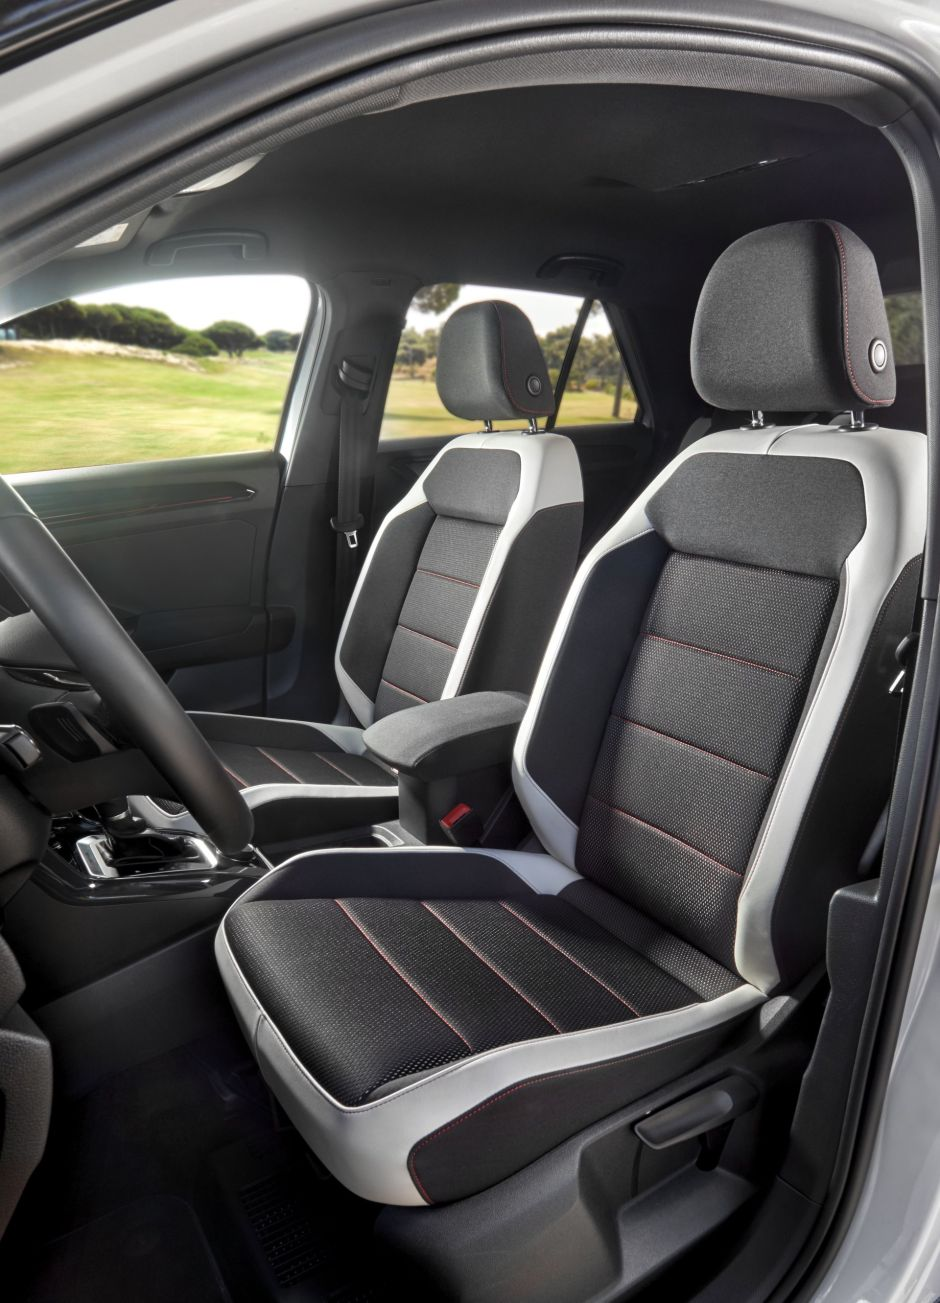 volkswagen t roc 2017 premier essai du nouveau suv de volkswagen photo 15 l 39 argus. Black Bedroom Furniture Sets. Home Design Ideas